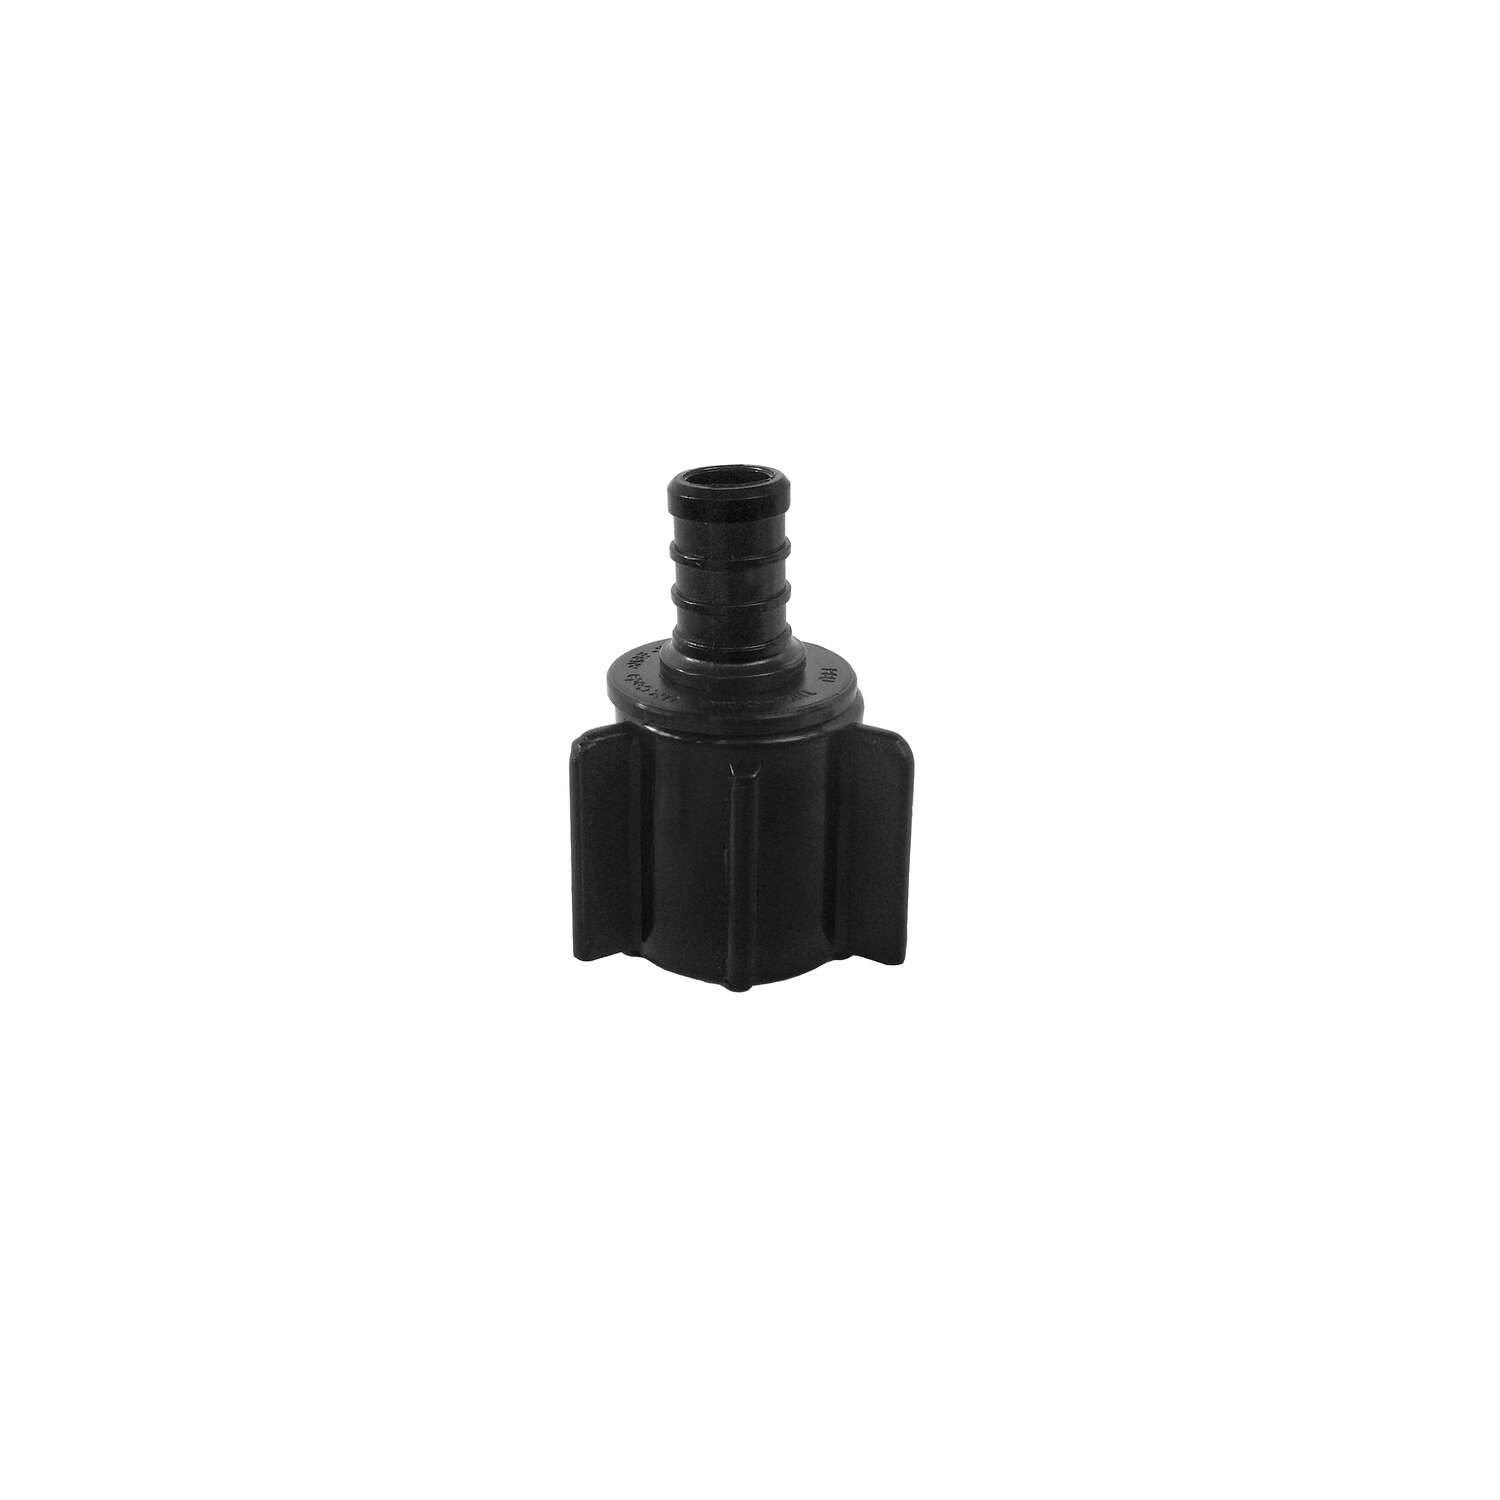 Flair-It  Ecopoly  1/2 in. PEX   x 1/2 in. Dia. FPT  Wing Nut Swivel Coupling